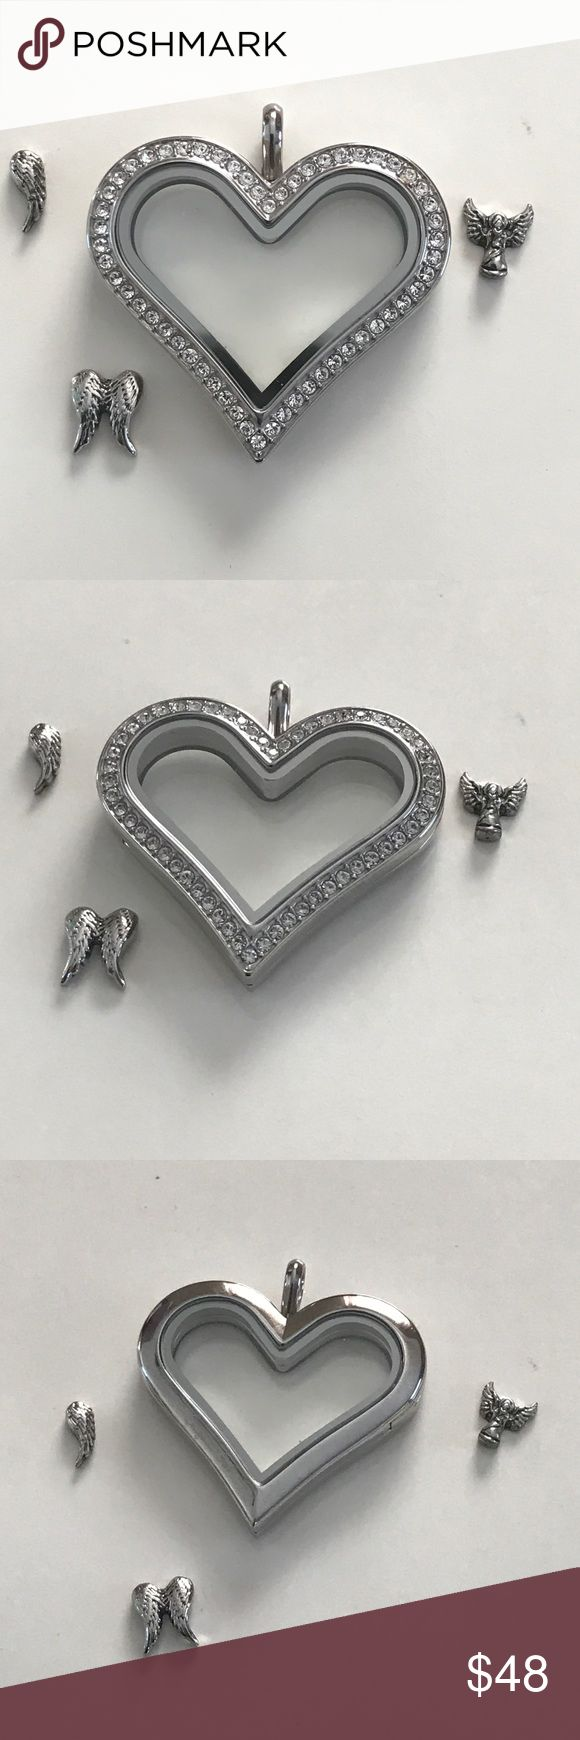 Origami Owl crystal heart charm holder with charms Beautiful Origami  crystal heart charm holder with charms never used it's a beautiful charm locket Origami Owl Jewelry Necklaces